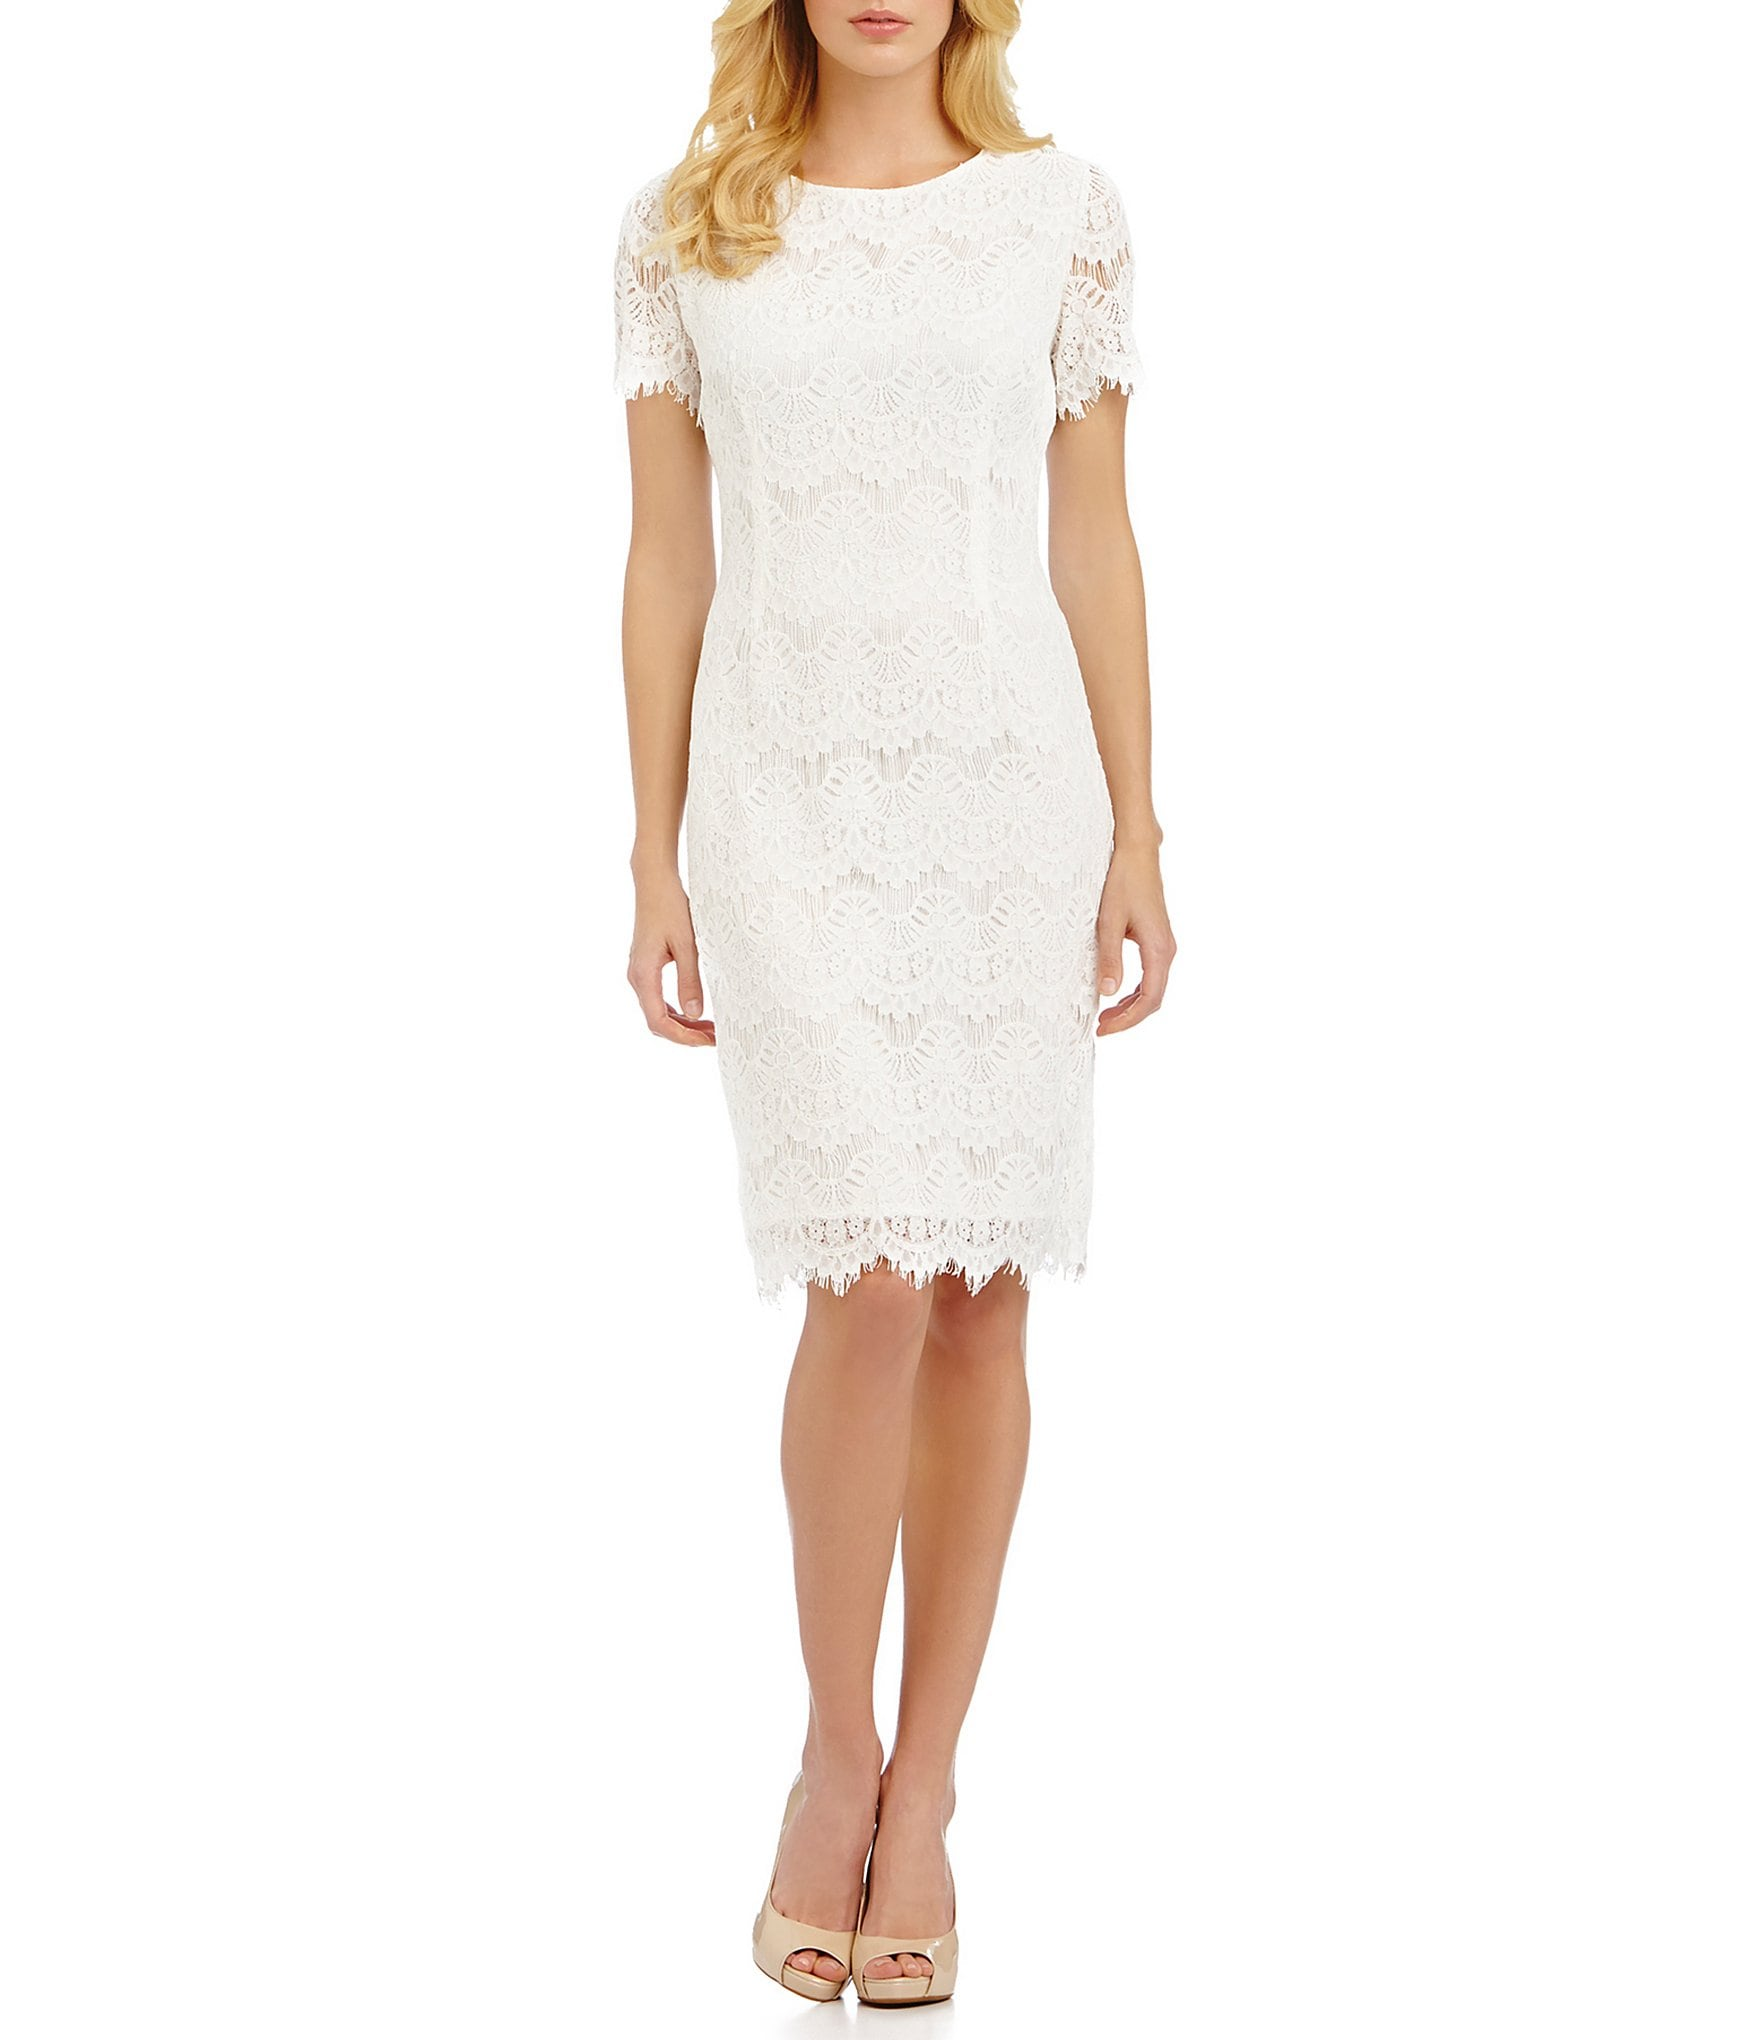 Ladies Gowns: Preston & York Felicia Short Sleeve Lace Sheath Dress